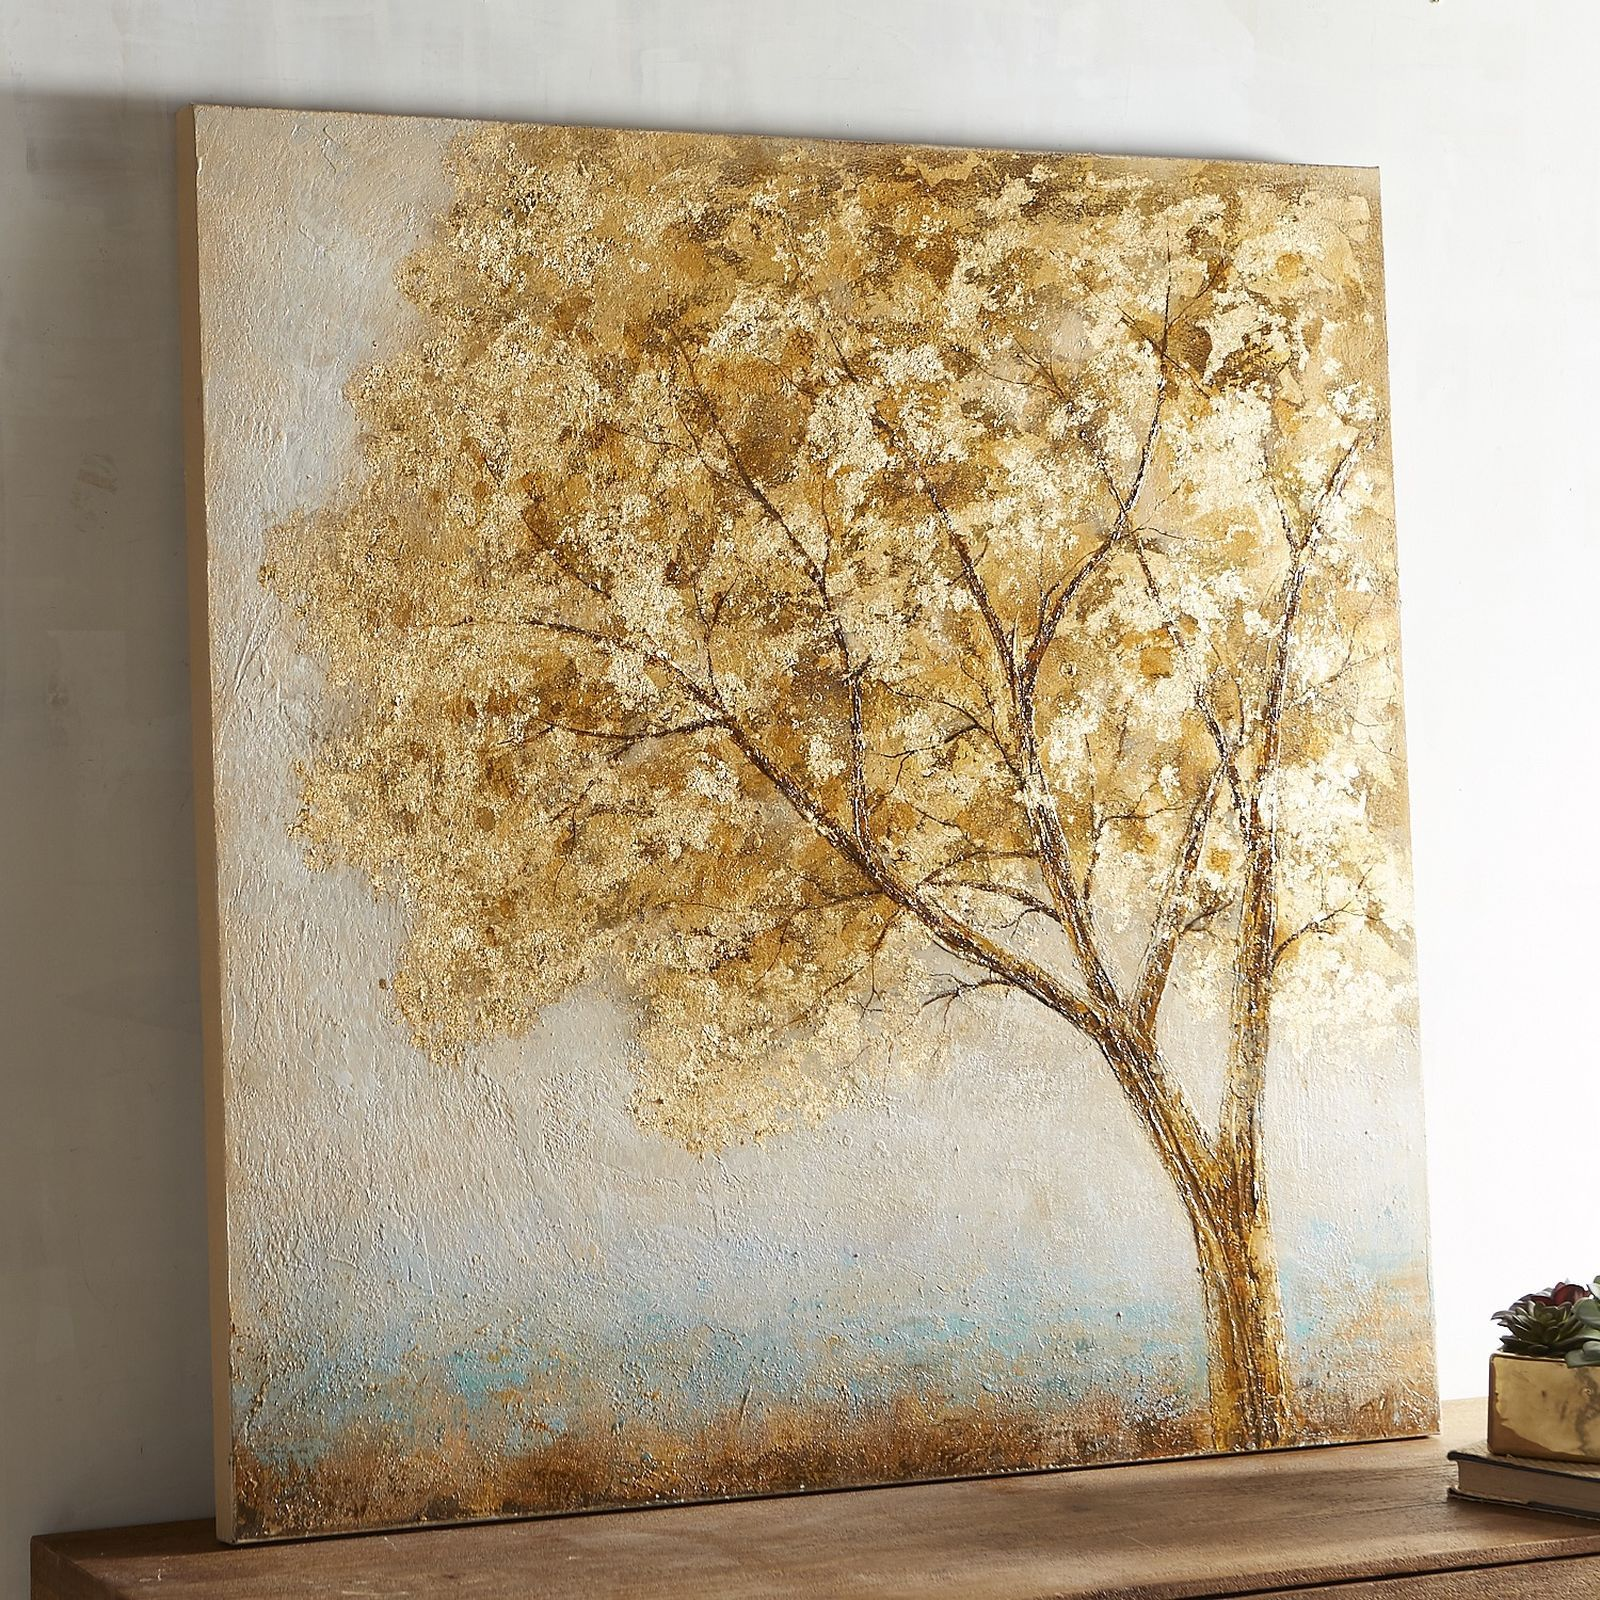 Gilded Single Tree Art Golden Treediy Wall Artcanvas